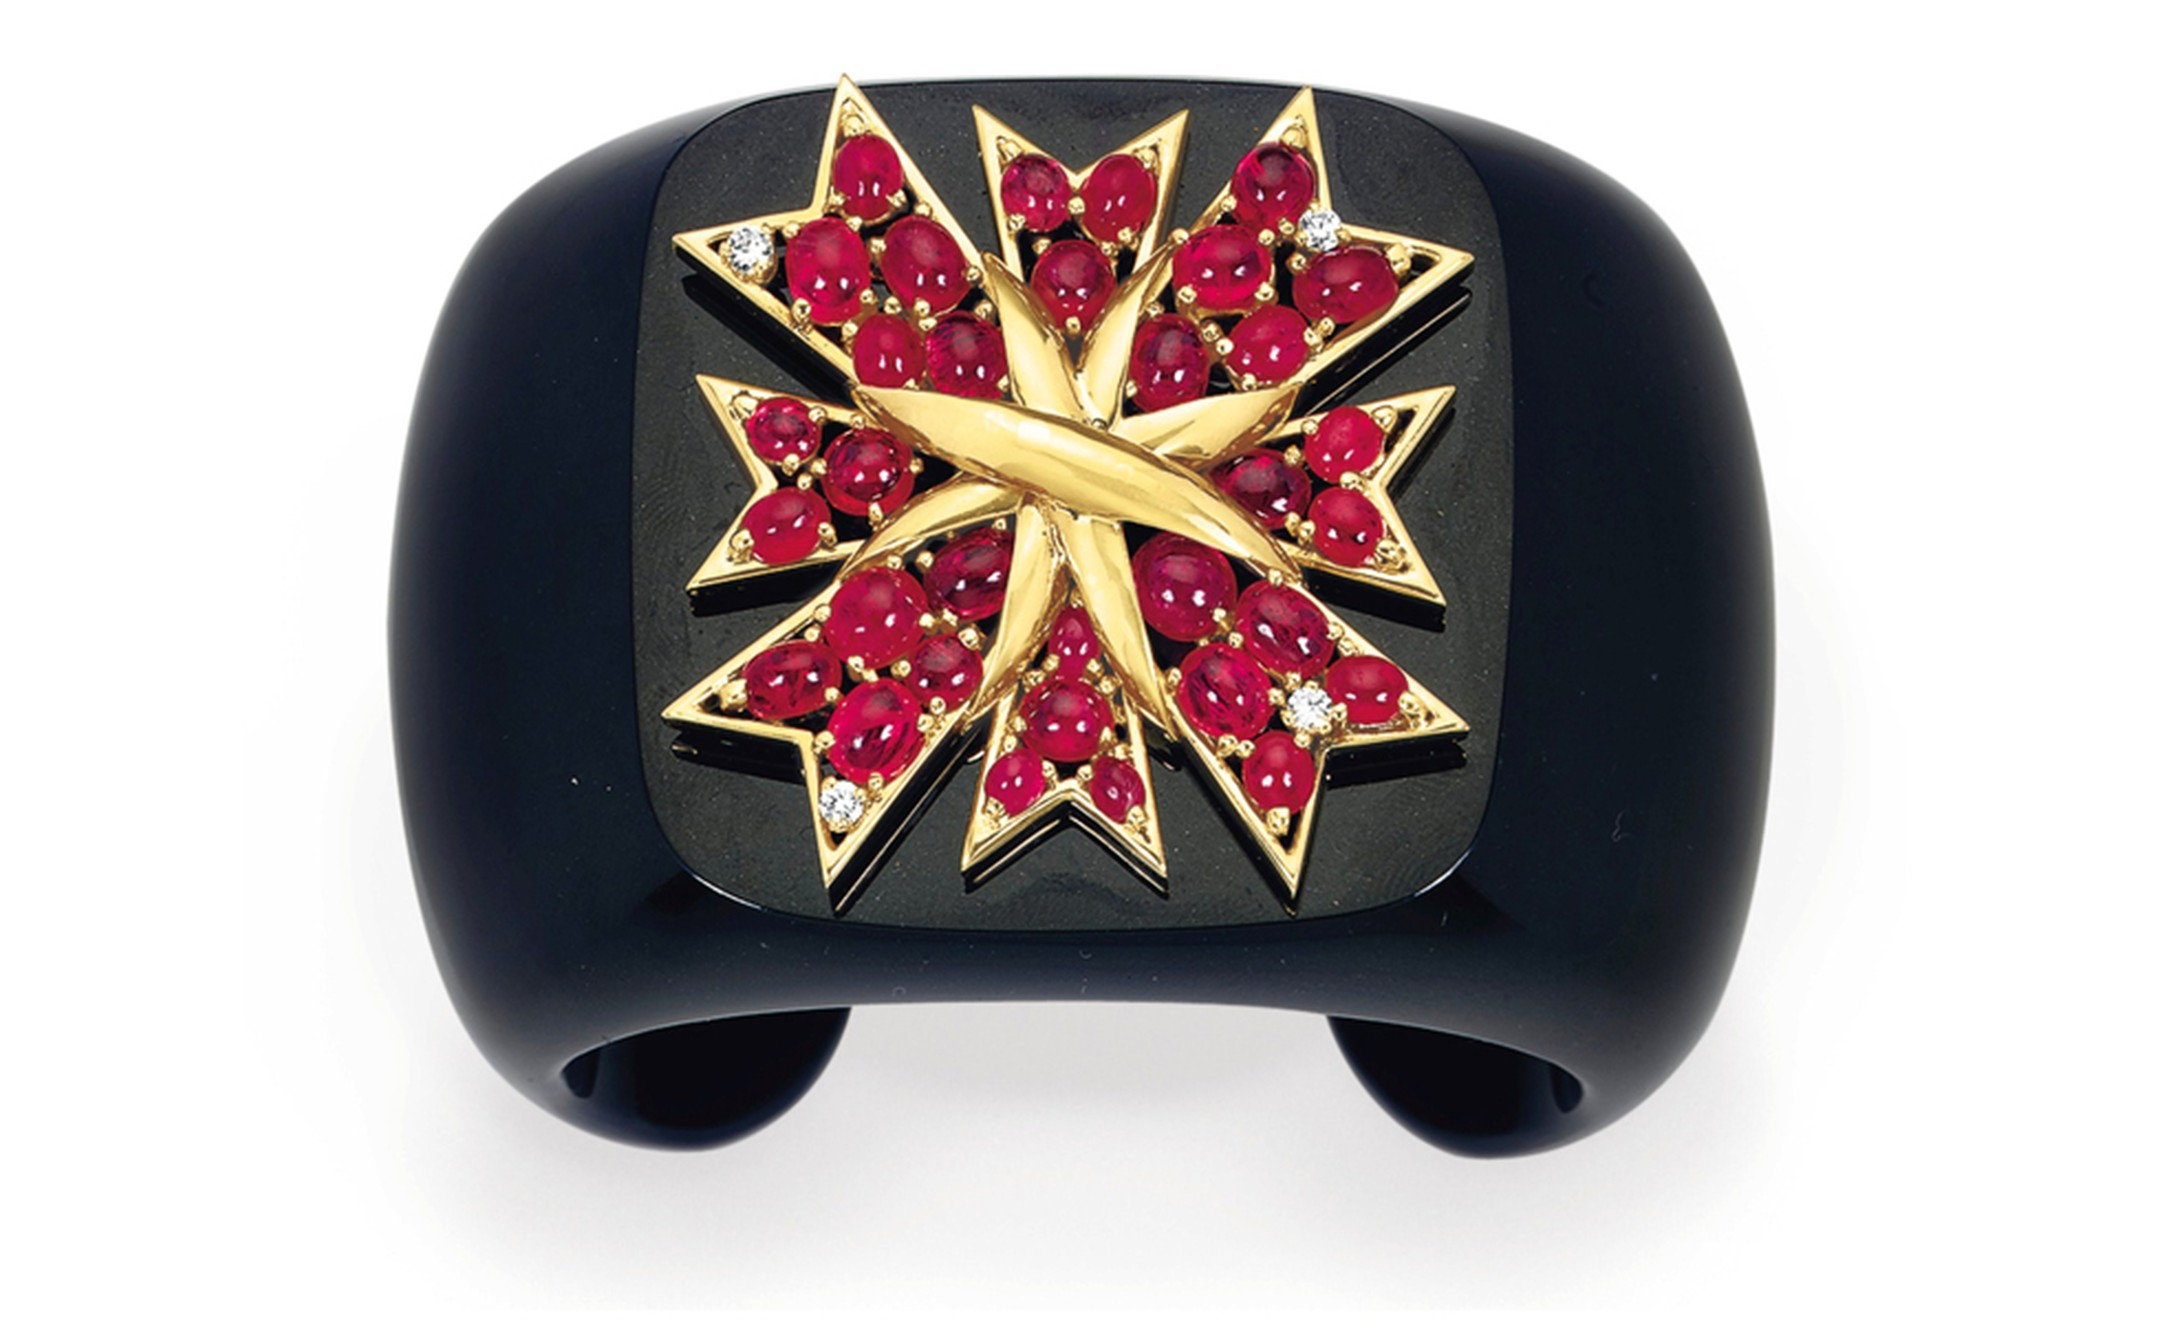 Lot 31. A diamond, ruby, onyx and gold cuff, by Verdura. Estimate 20,000 - 30,000 U.S. dollars. SOLD FOR $32,500